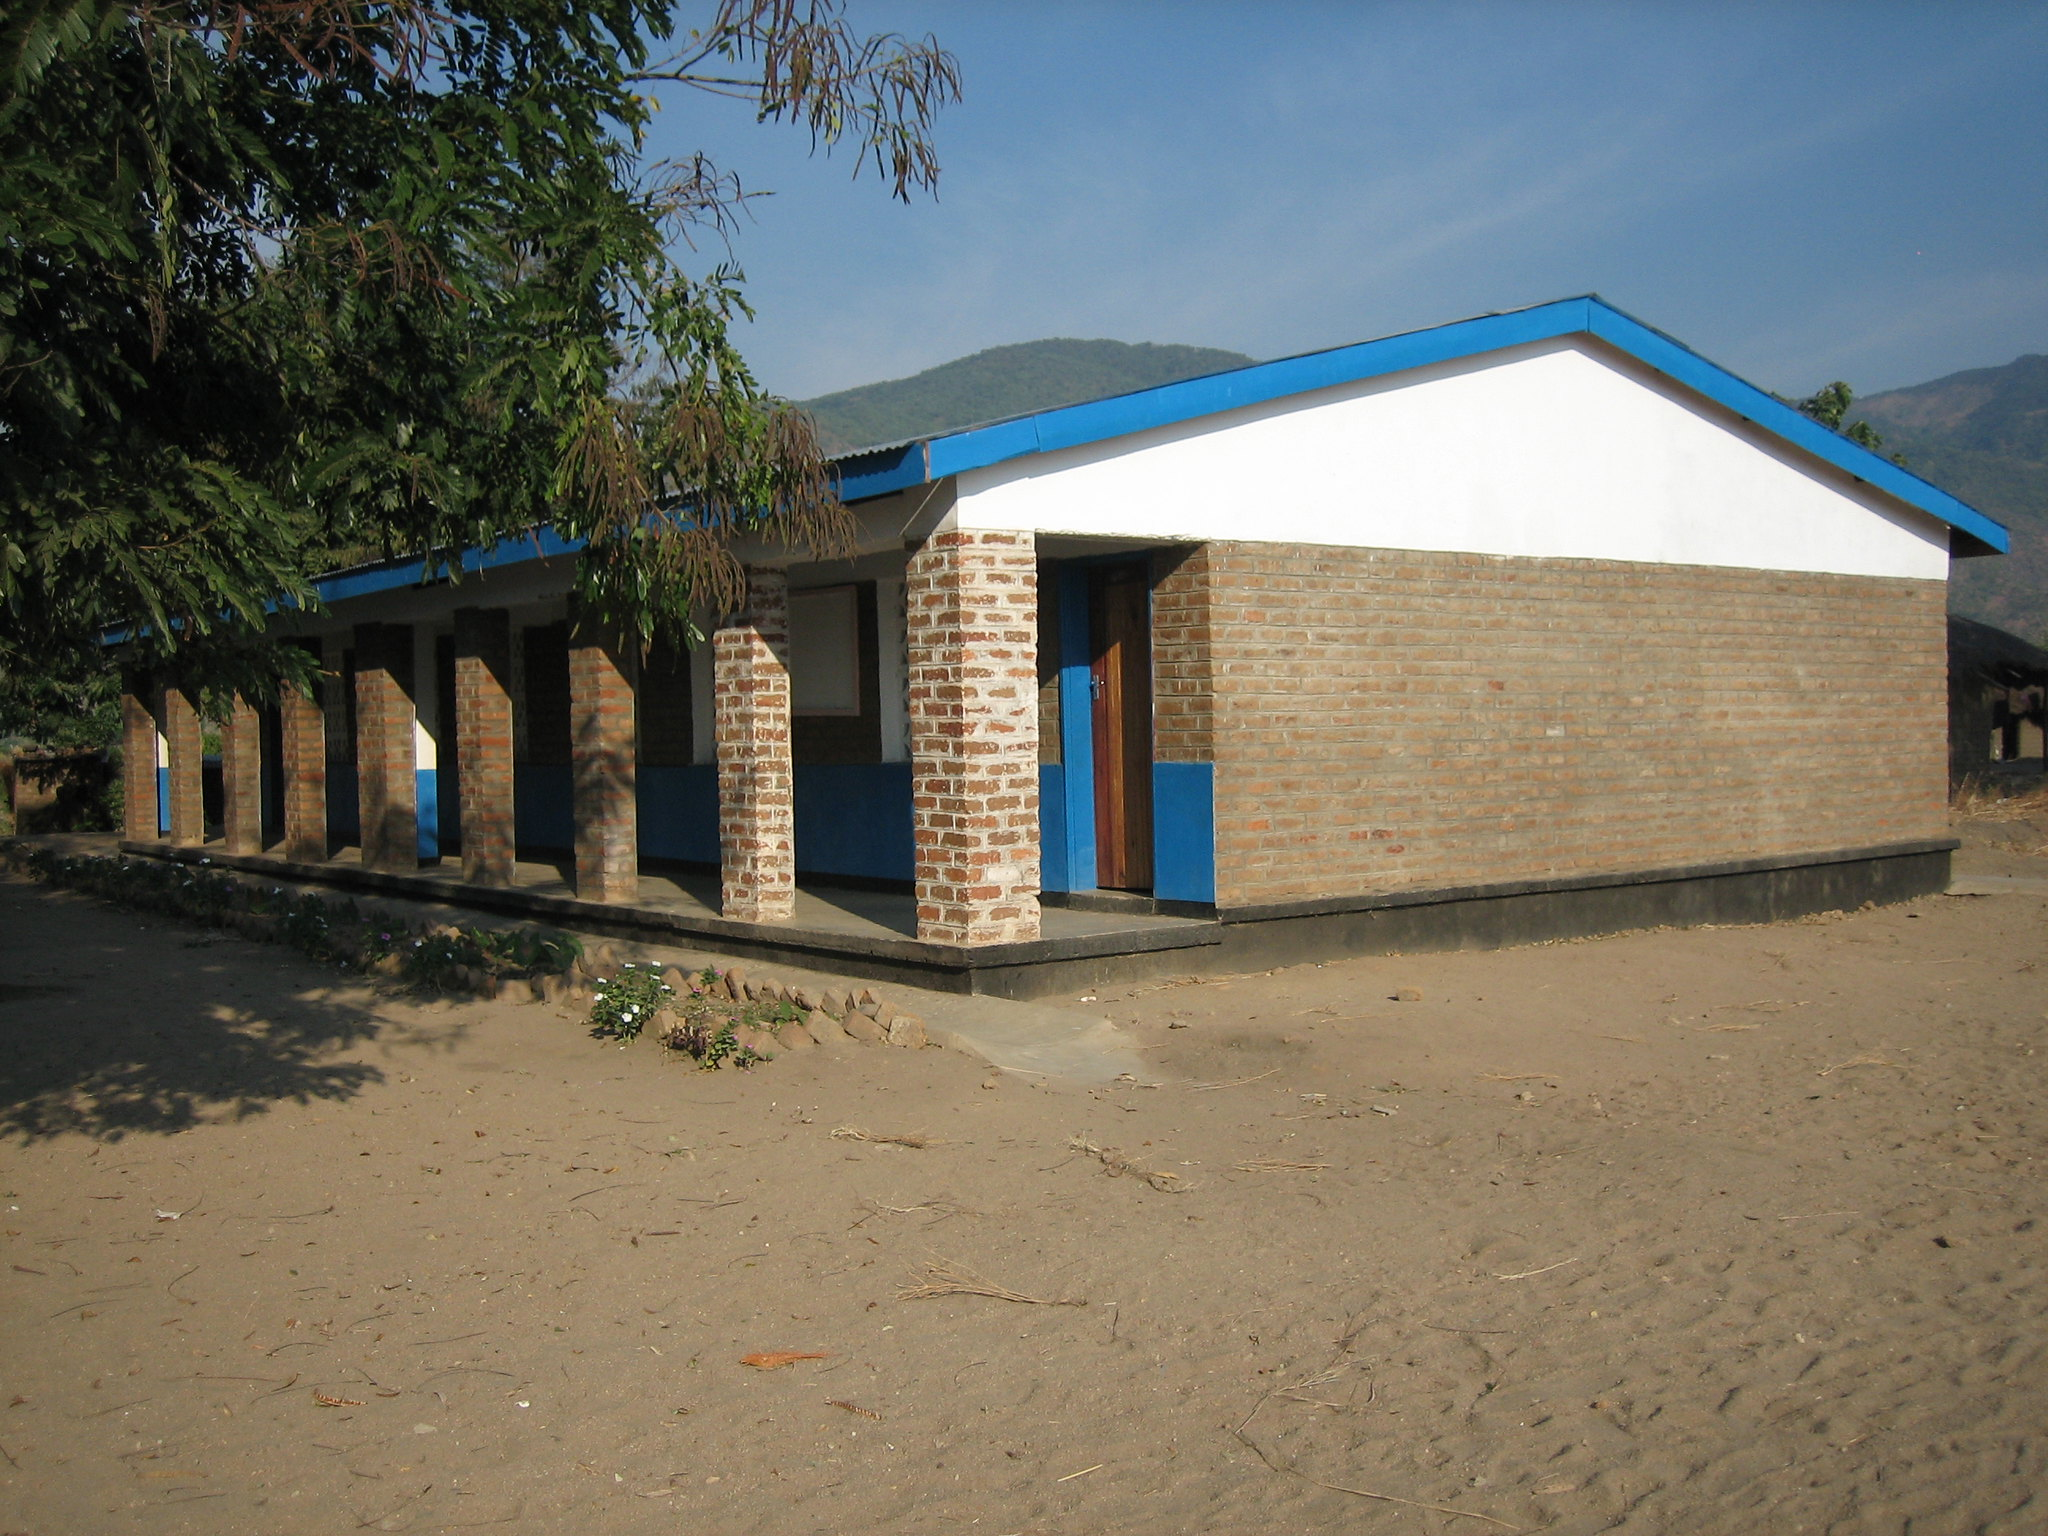 Temwa and the community came together to build Usisya Girl's School  and hostel